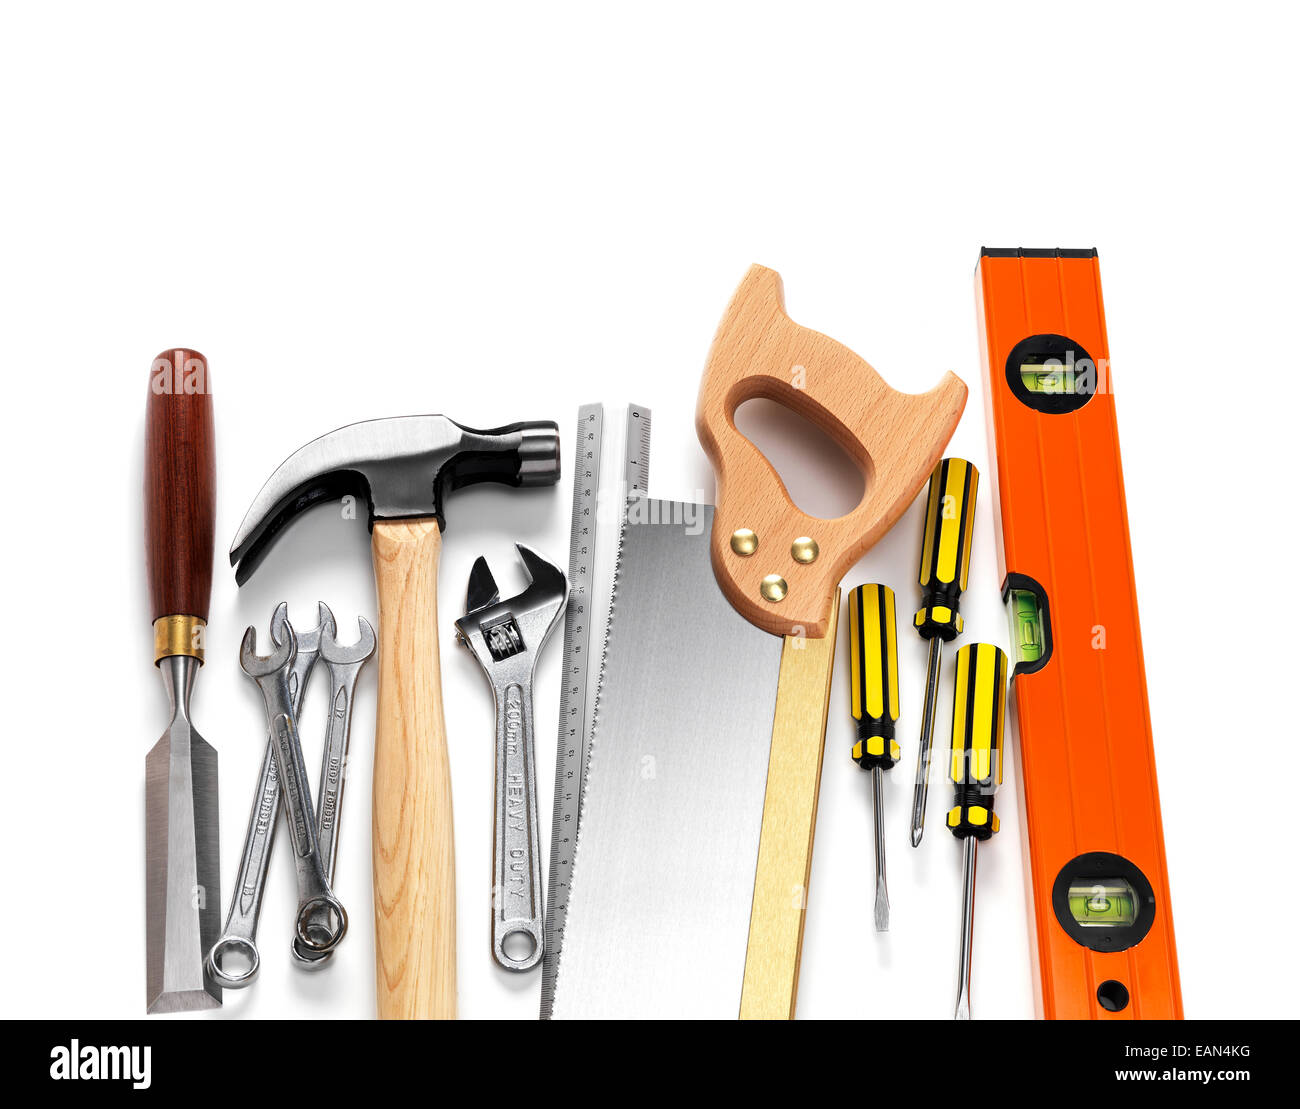 Selection of work tools isolated on a white background - Stock Image